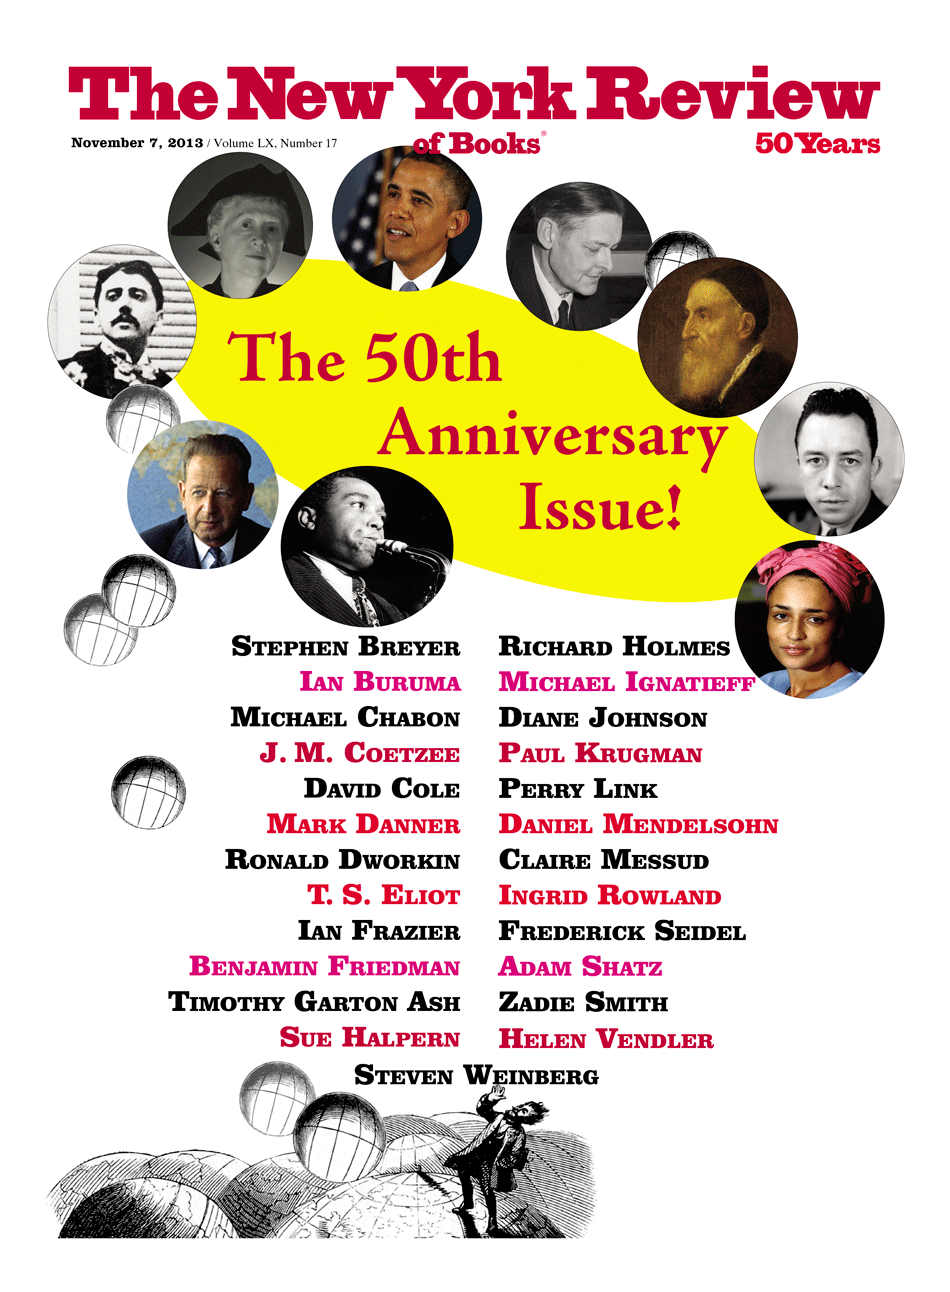 Image of the November 7, 2013 issue cover.